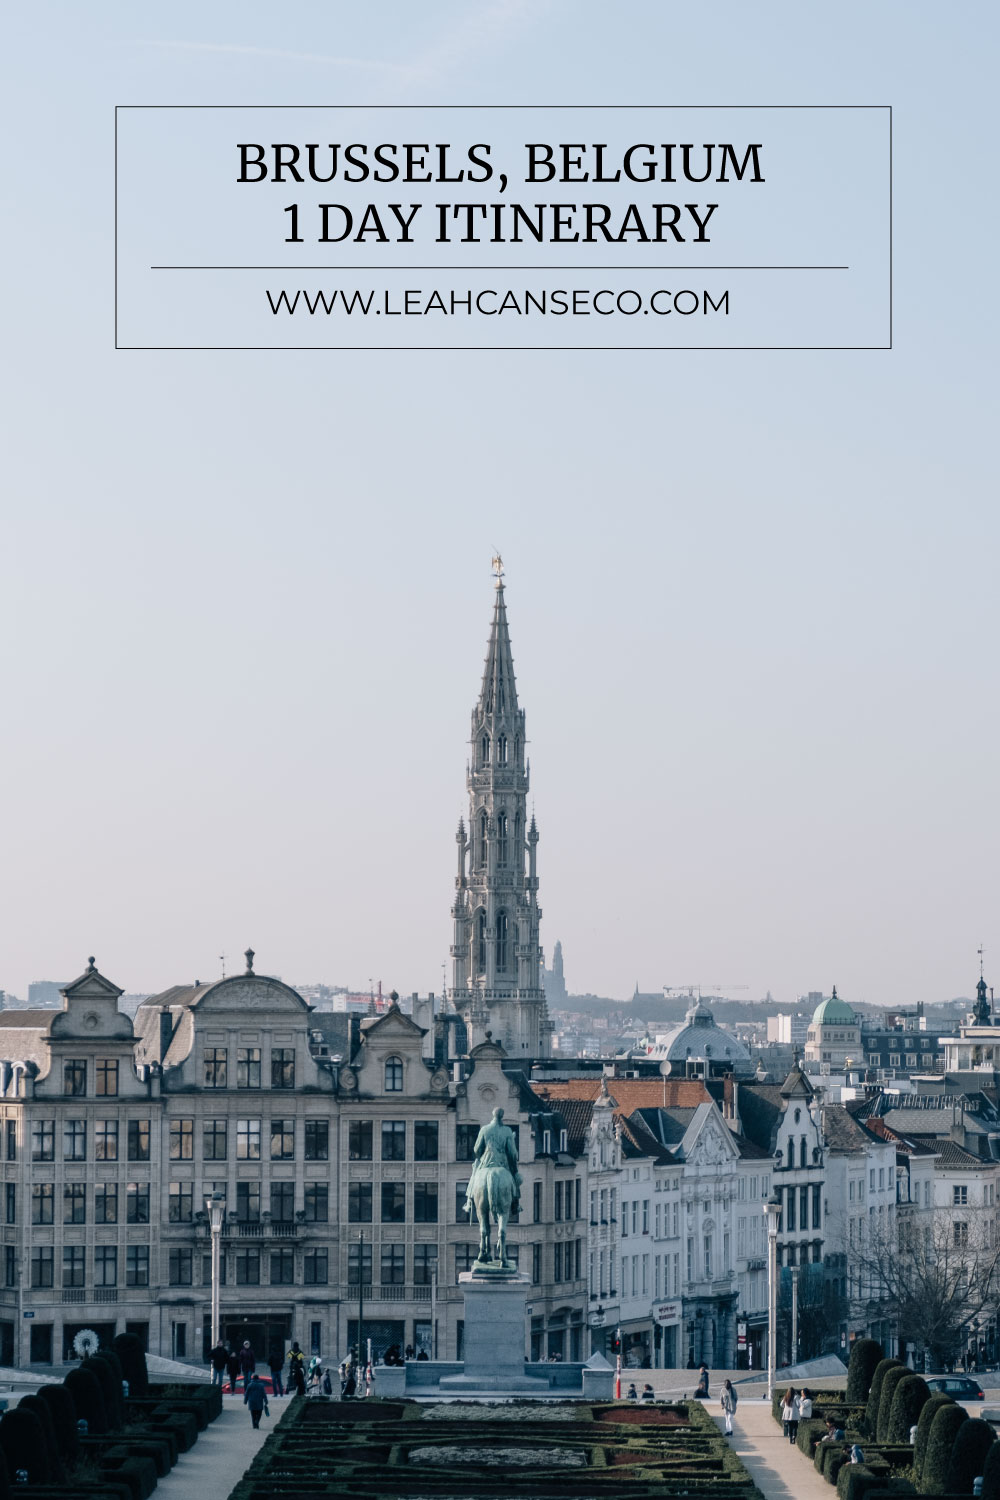 brussels belgium 1 day itinerary